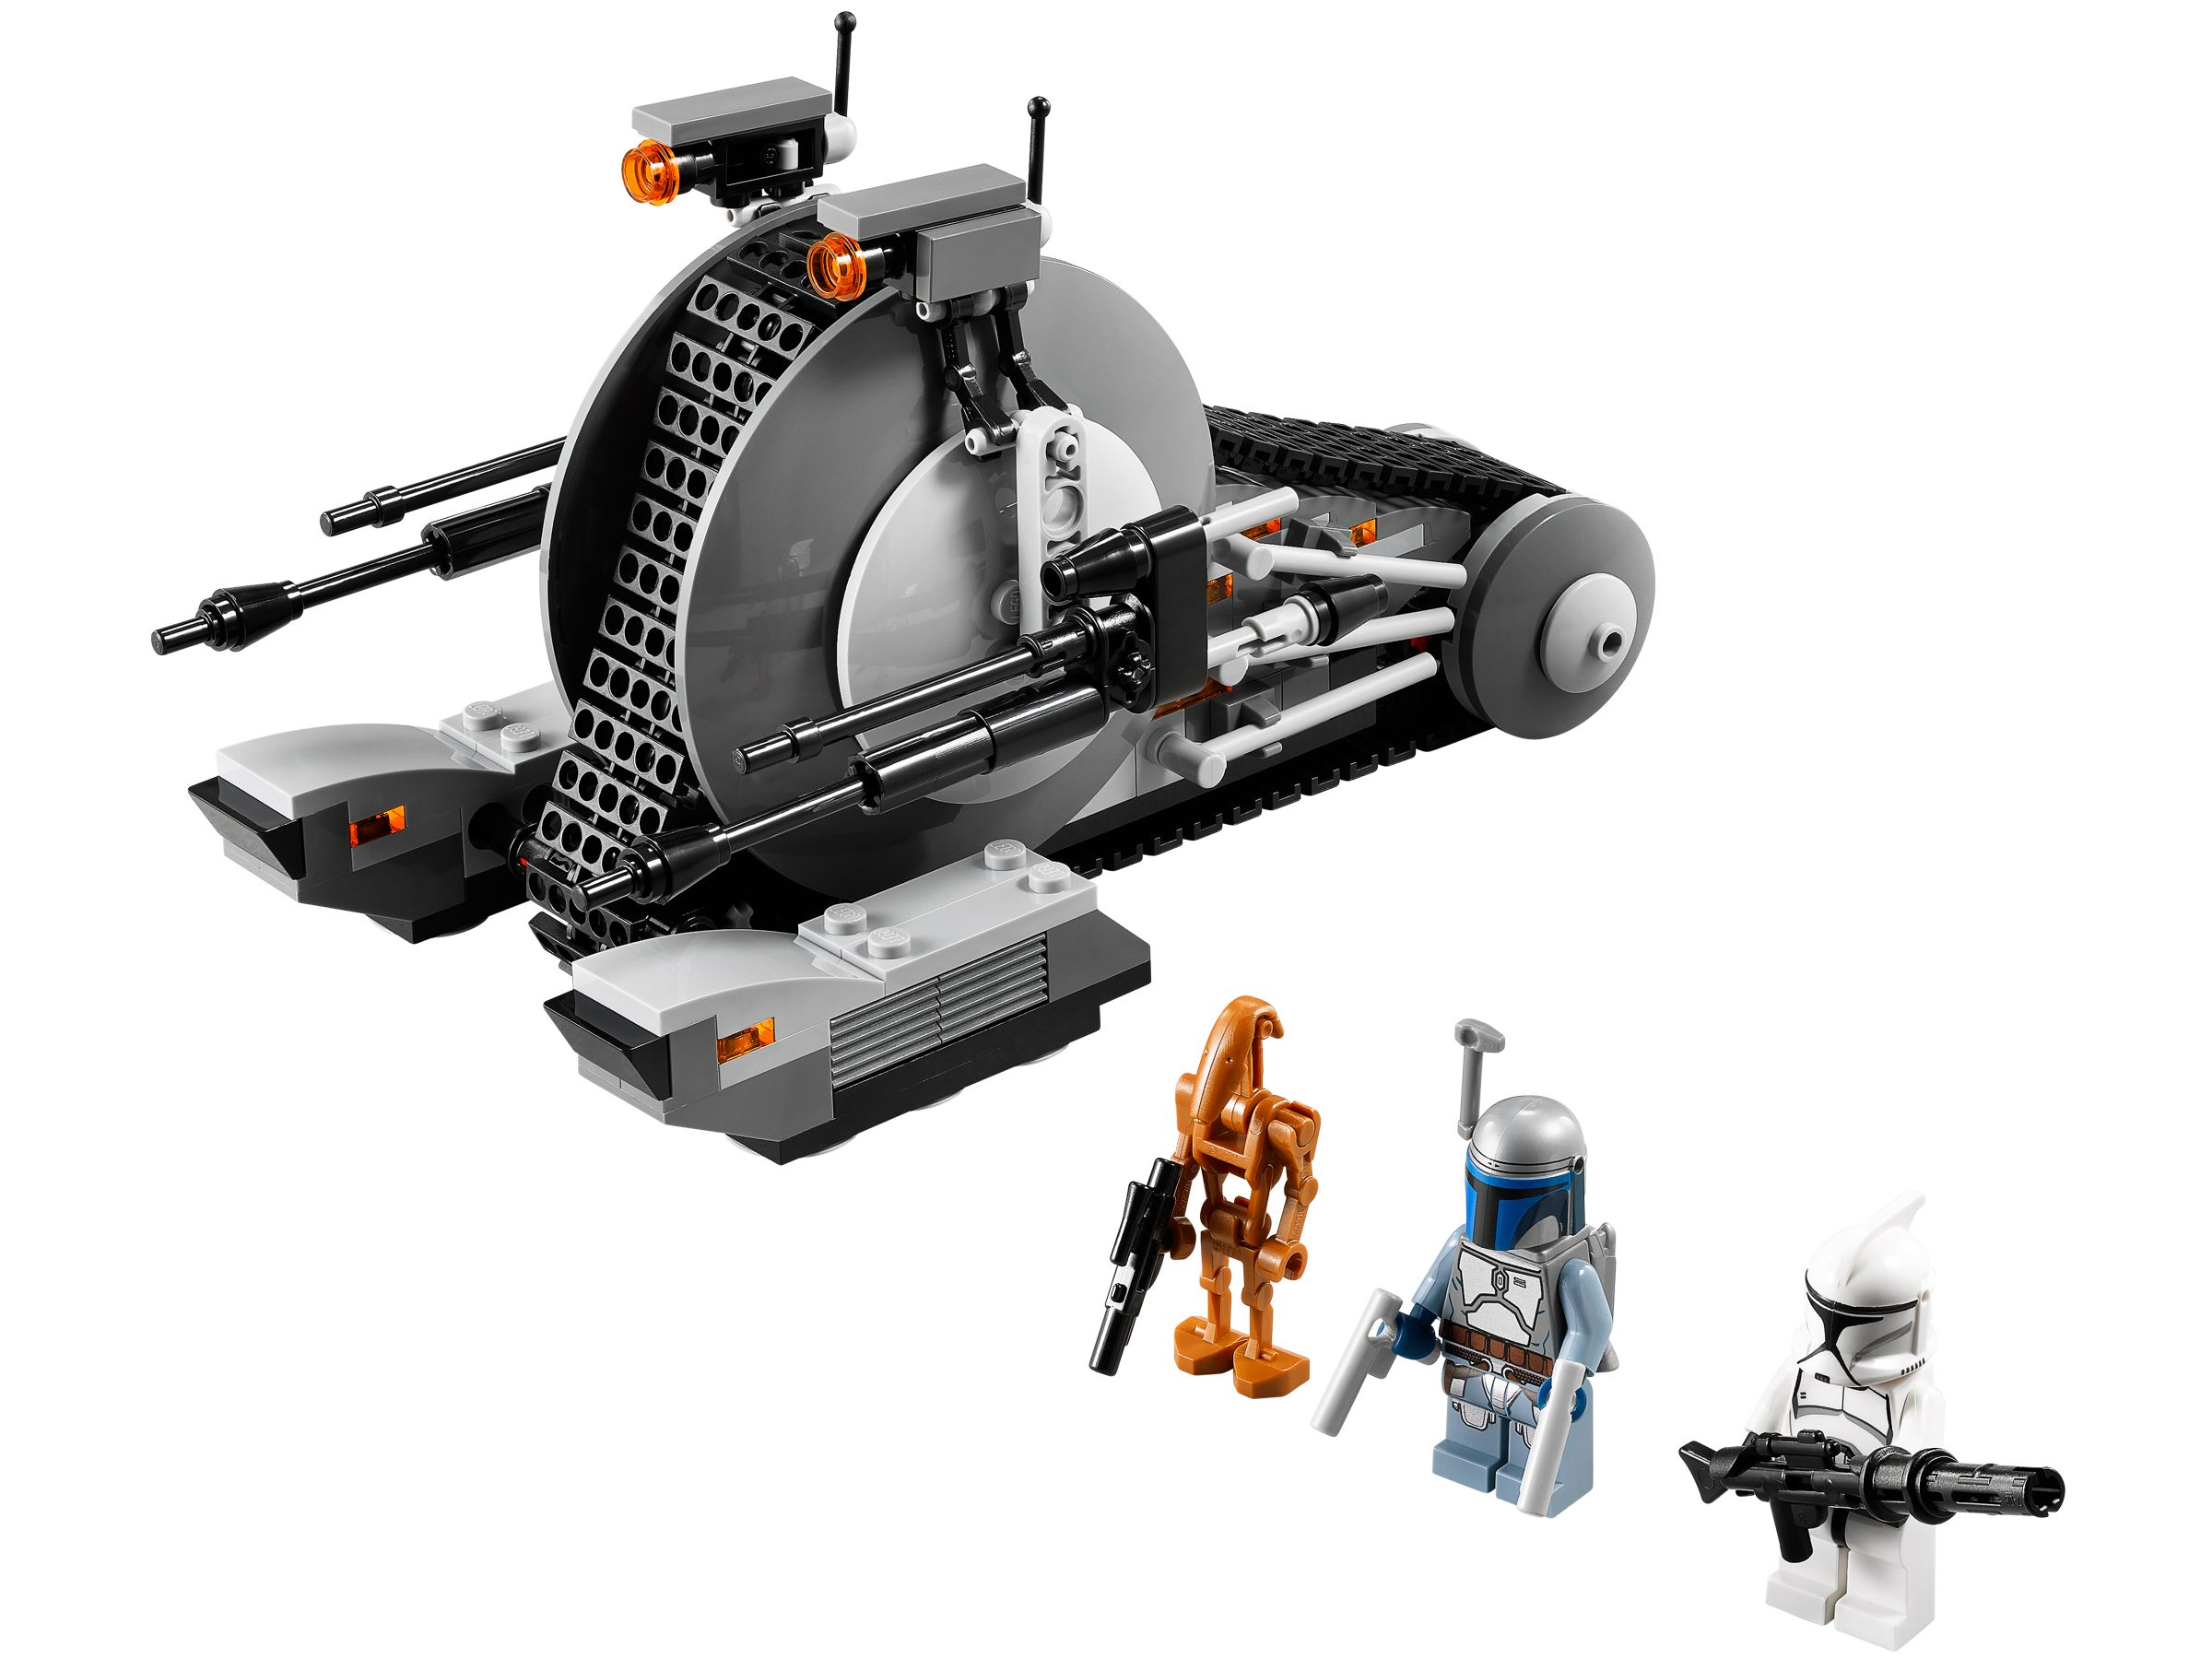 LEGO Star Wars 75015 Corporate Alliance Tank Droid™ LEGO_75015.jpg